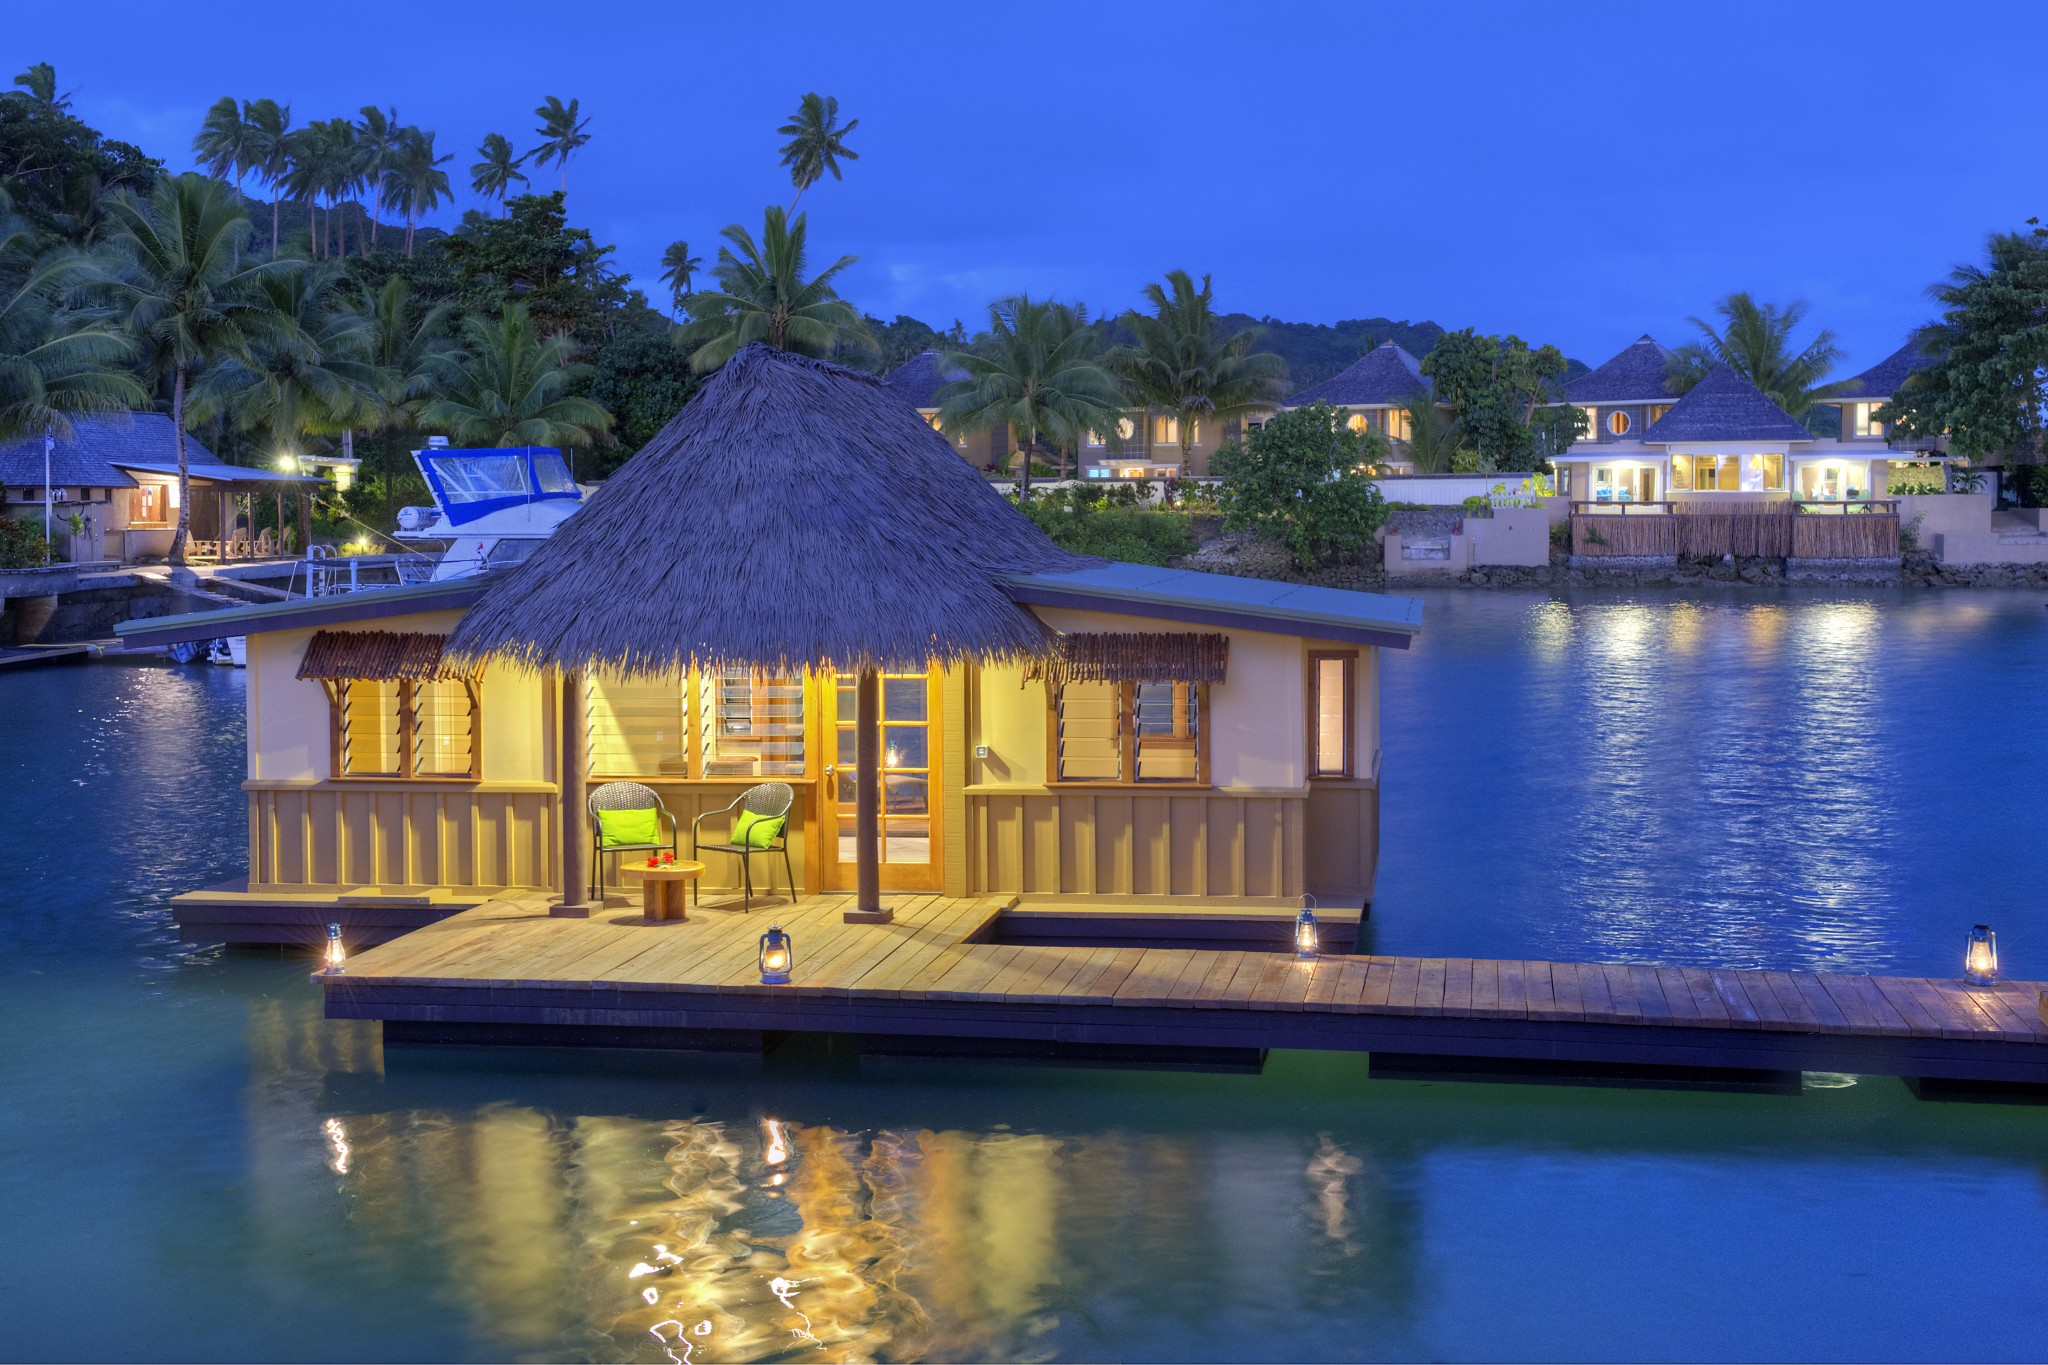 Staying in an overwater bungalow in fiji koro sun Overwater bungalows fiji